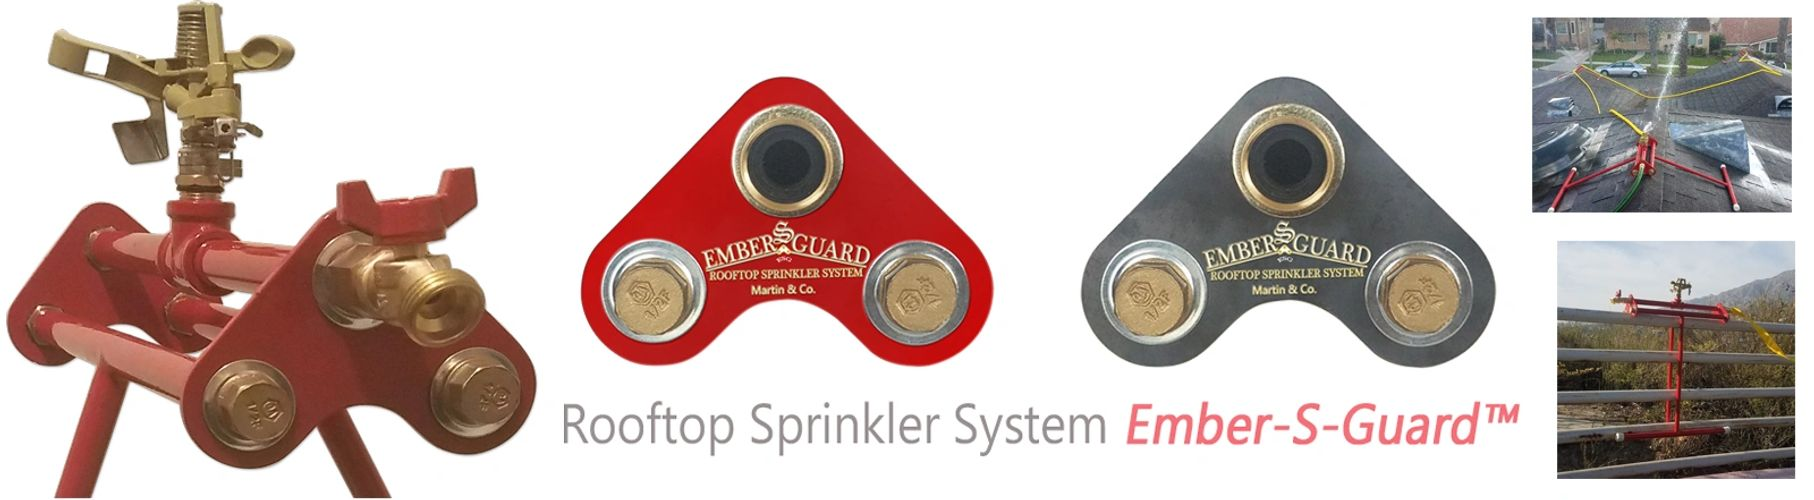 "Roof sprinkler system One Link of many in the ""chain of wildfire survival"""